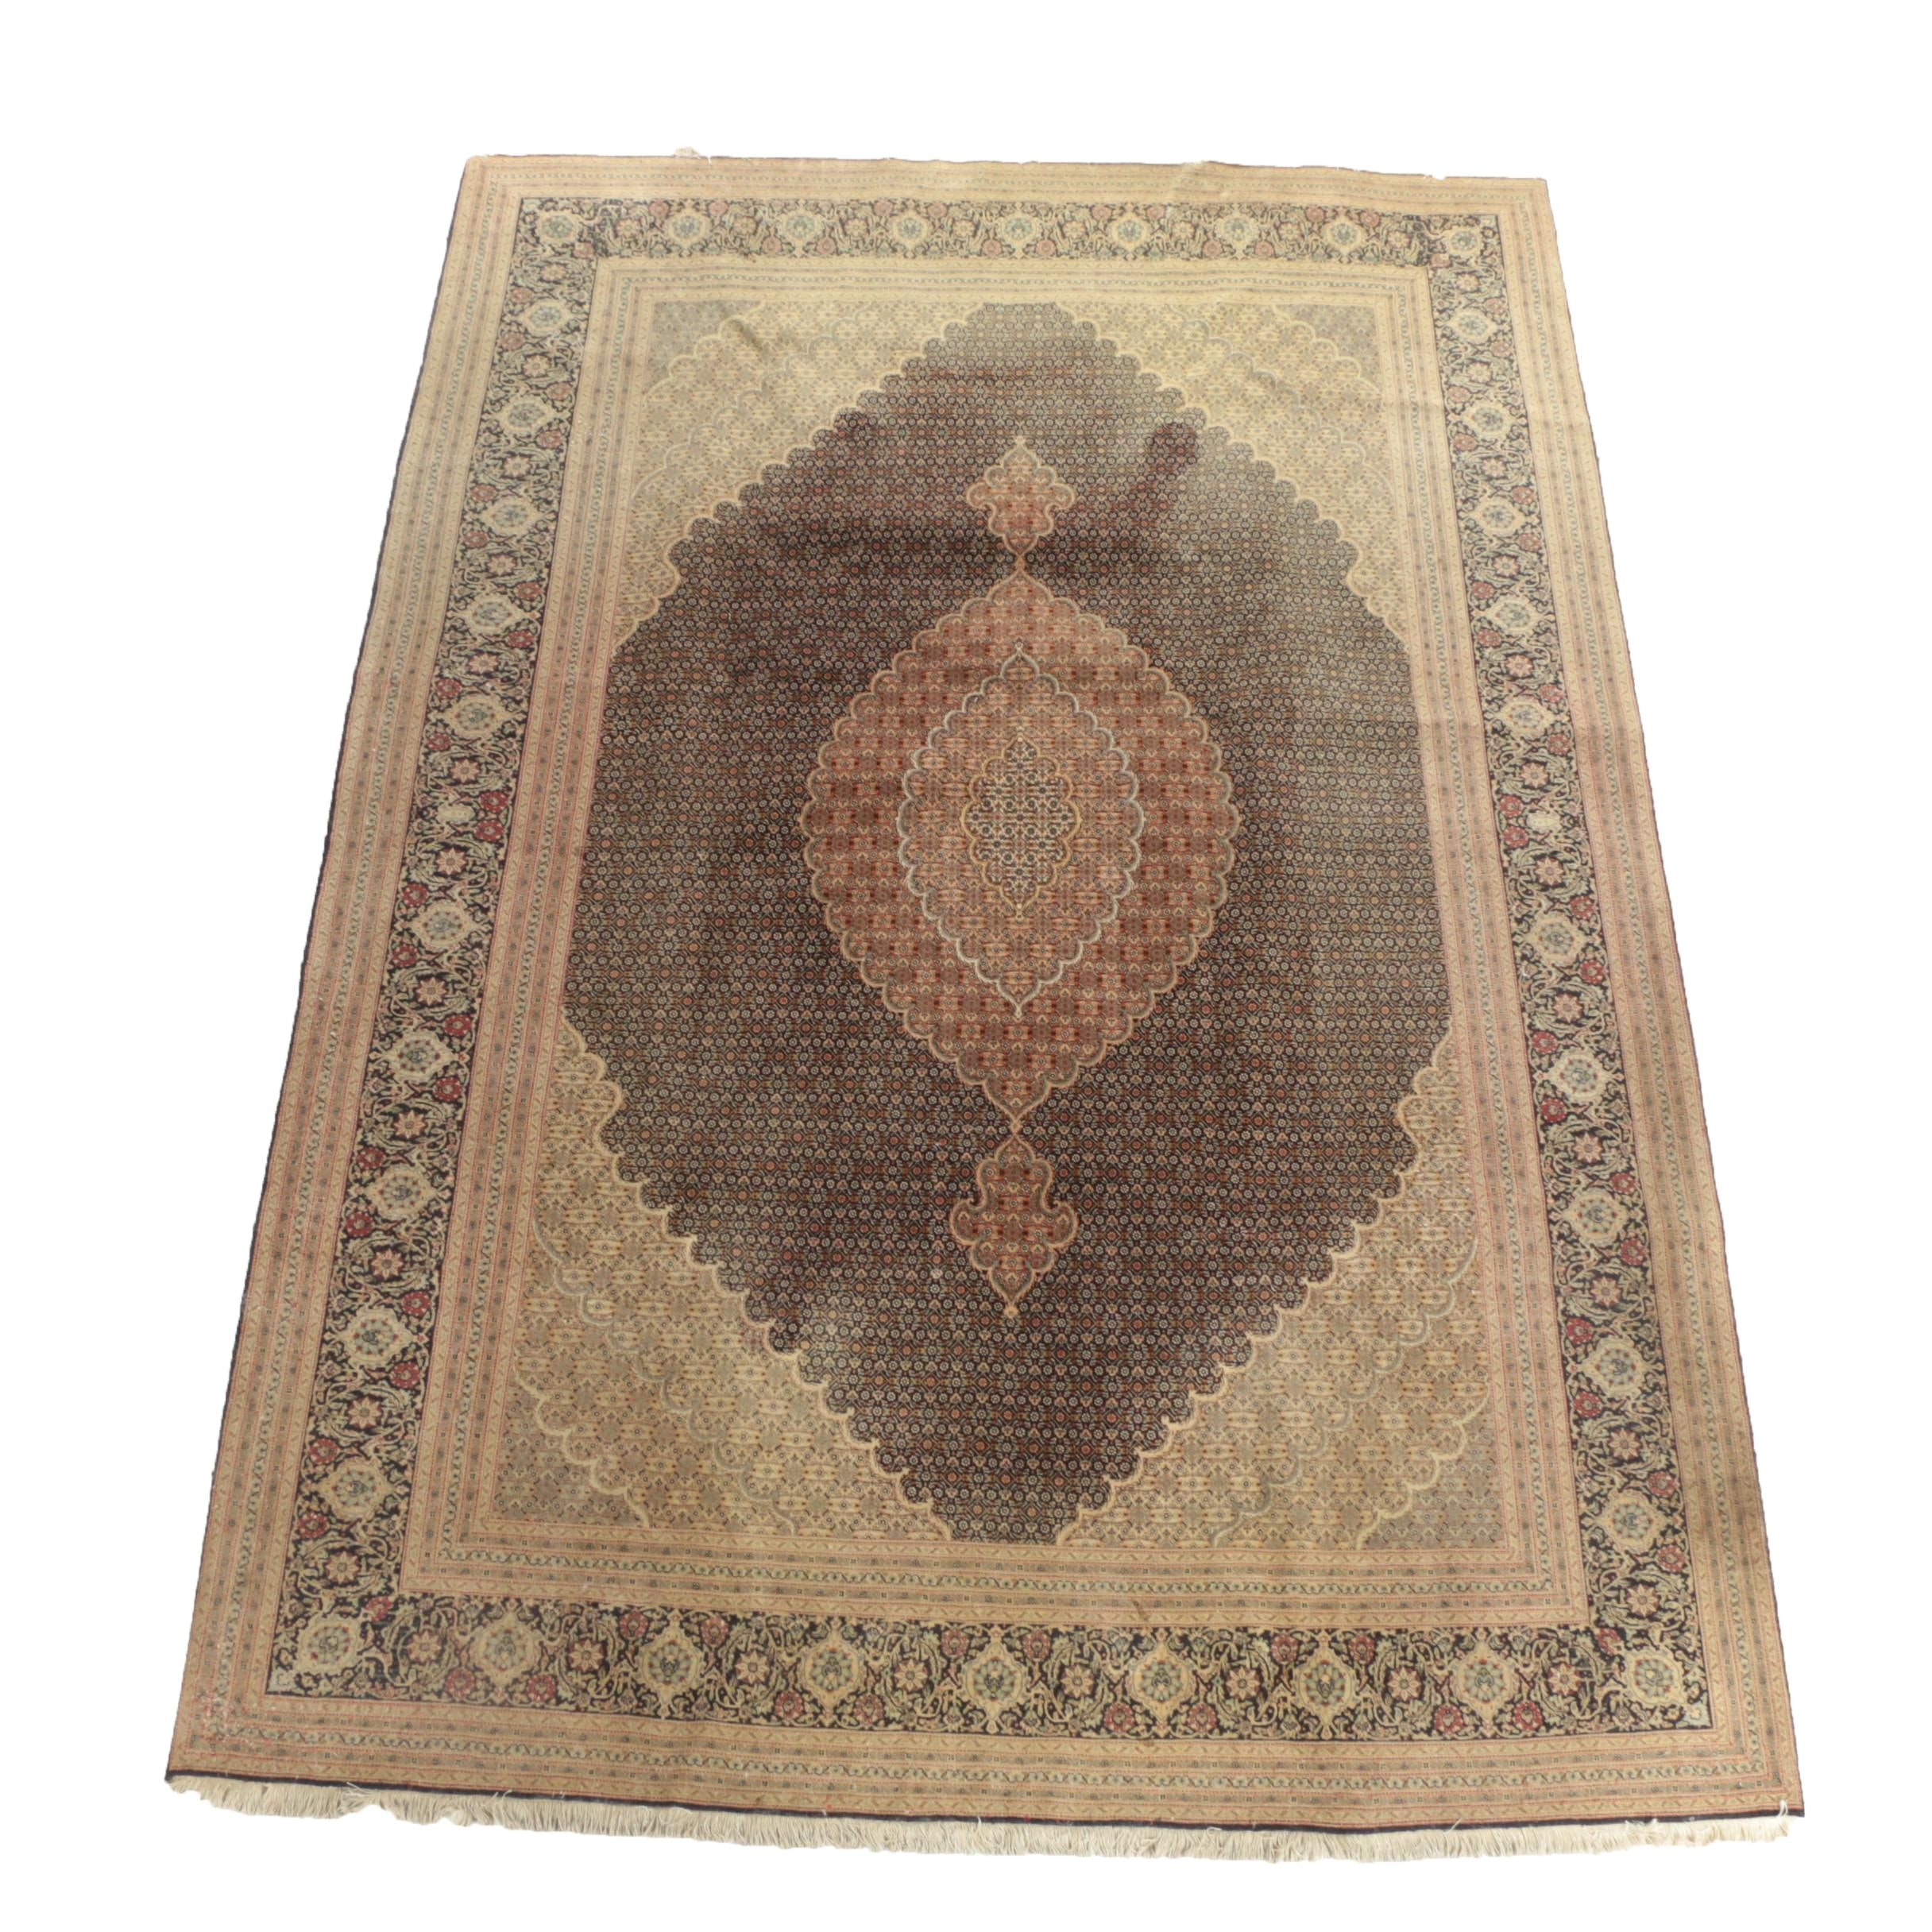 Finely Hand-Knotted Persian Mahi Tabriz Wool Room Sized Rug